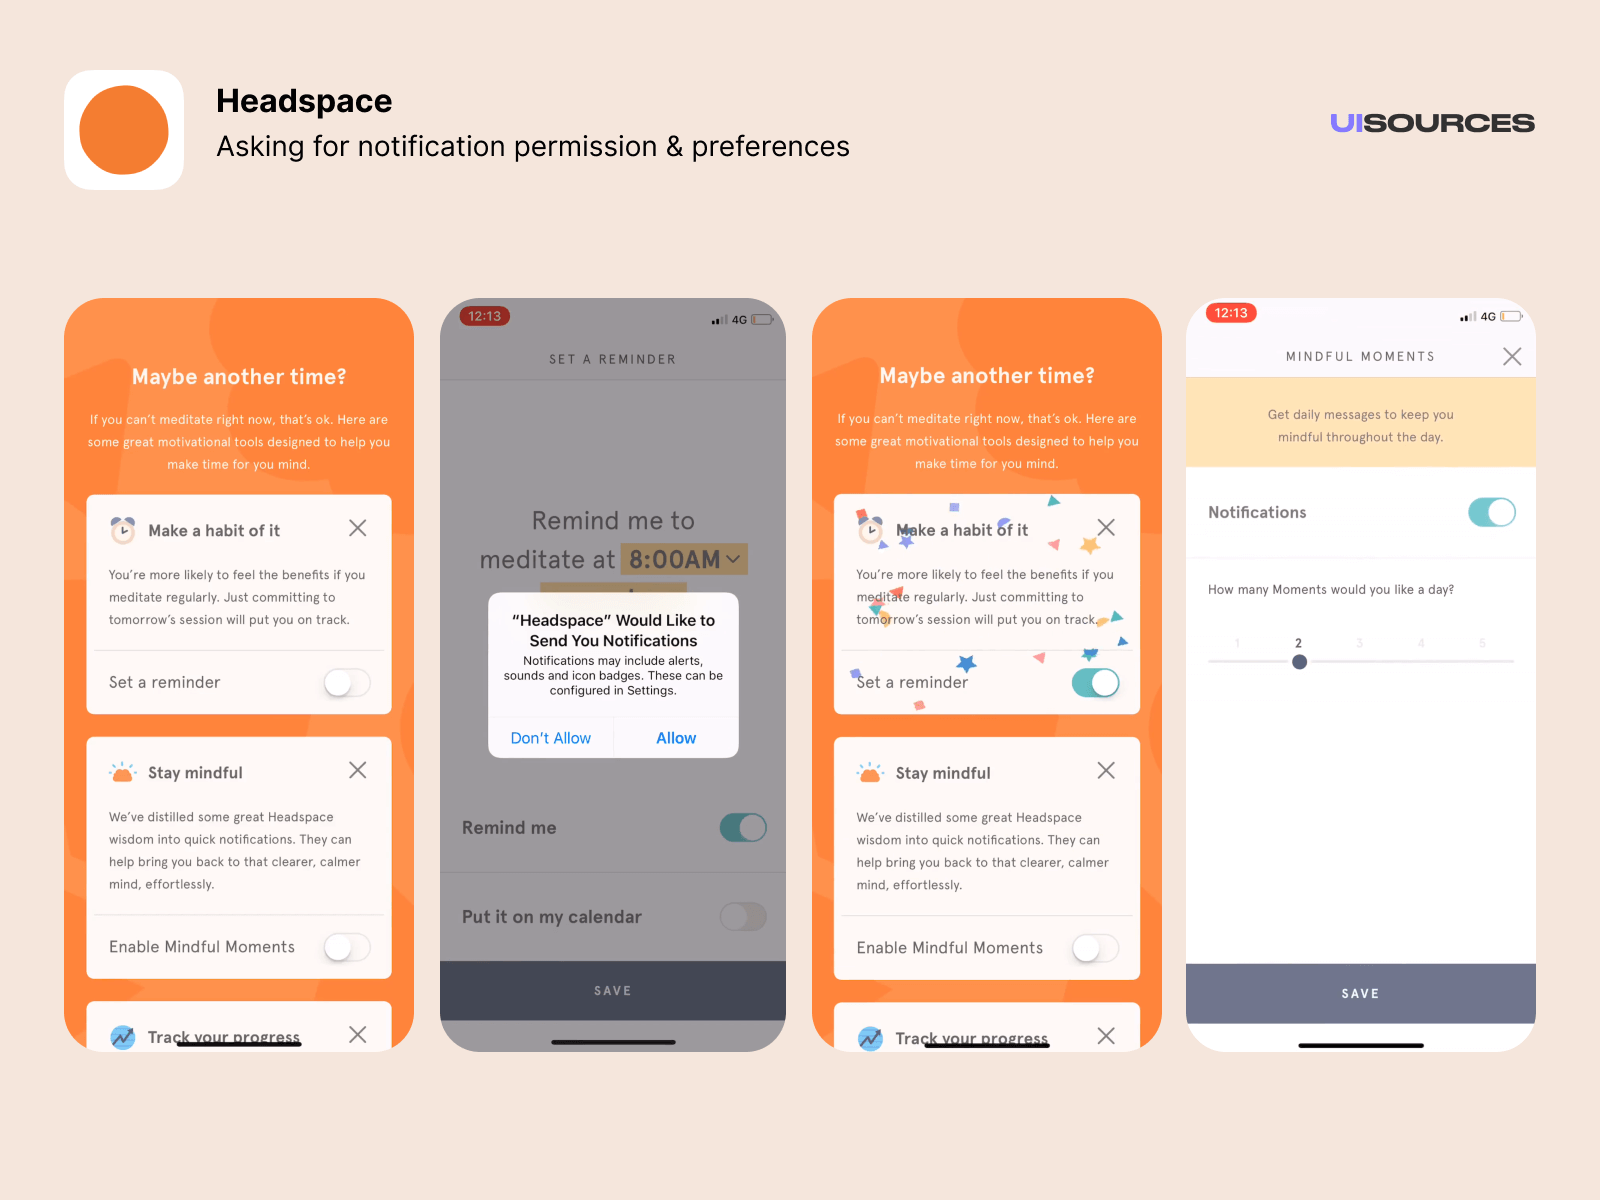 Asking for notification permissions and preferences